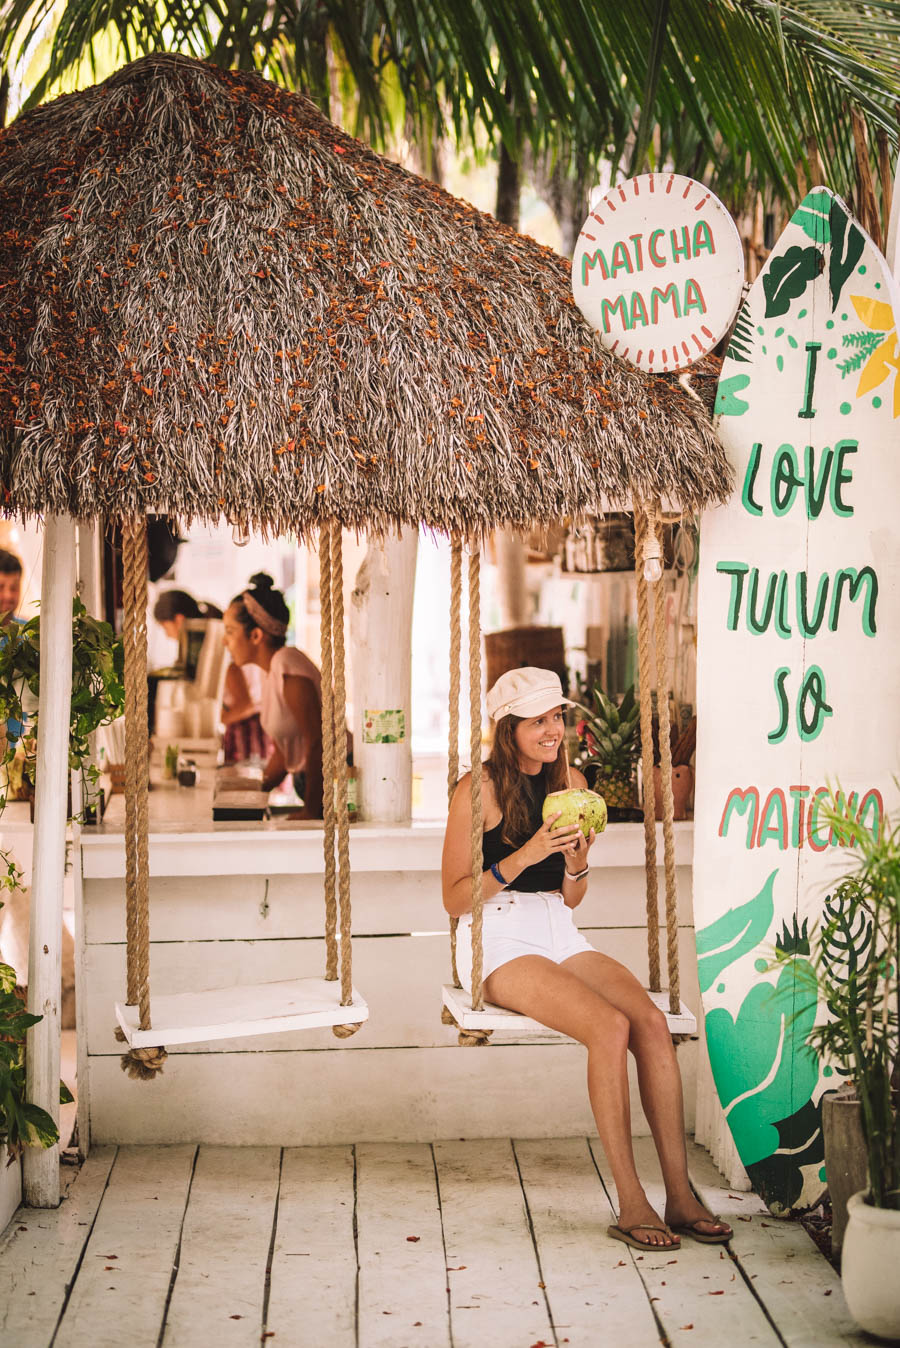 Matach Mana is one of the best foodie experiences in Tulum. Add it to your list for healthy and vegan cafes in Tulum